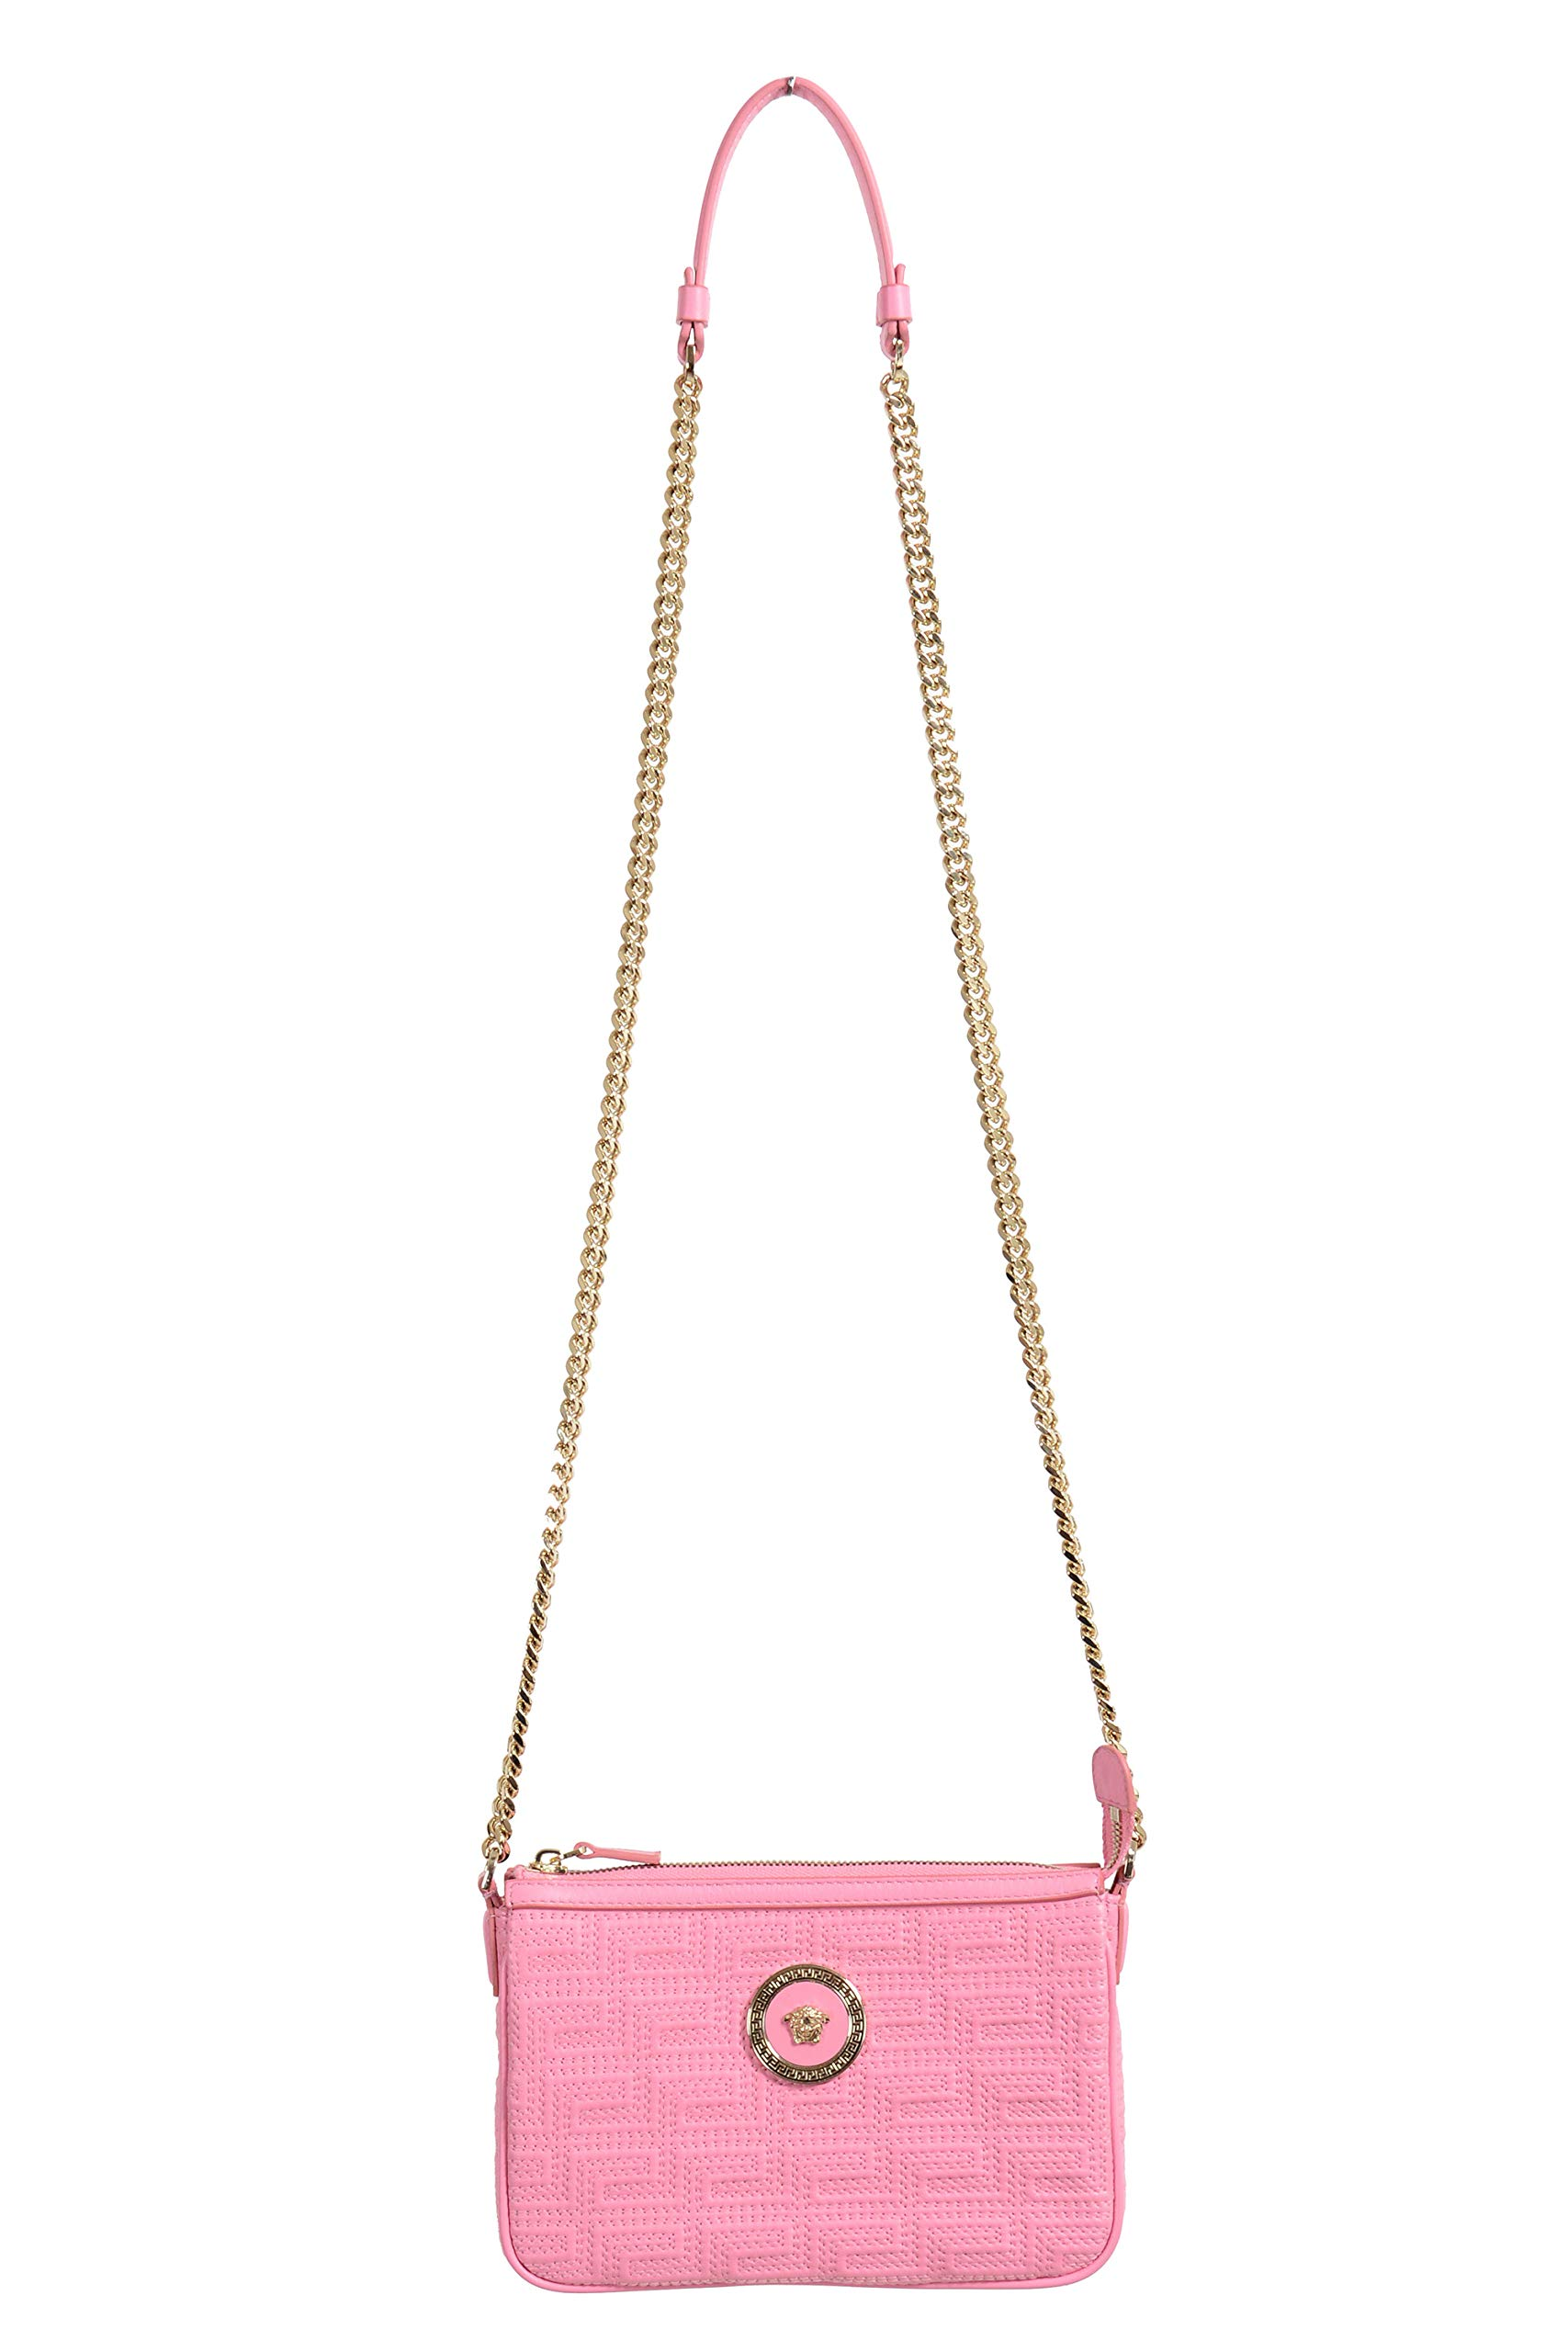 Quilted Leather Pink Chain Strap Women's Crossbody Shoulder Bag